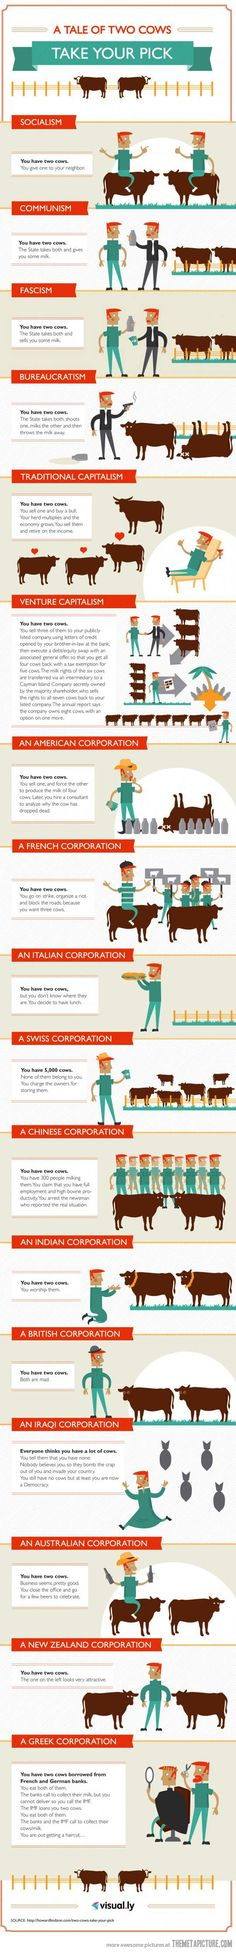 A Tale of Two Cows (how the world works)…